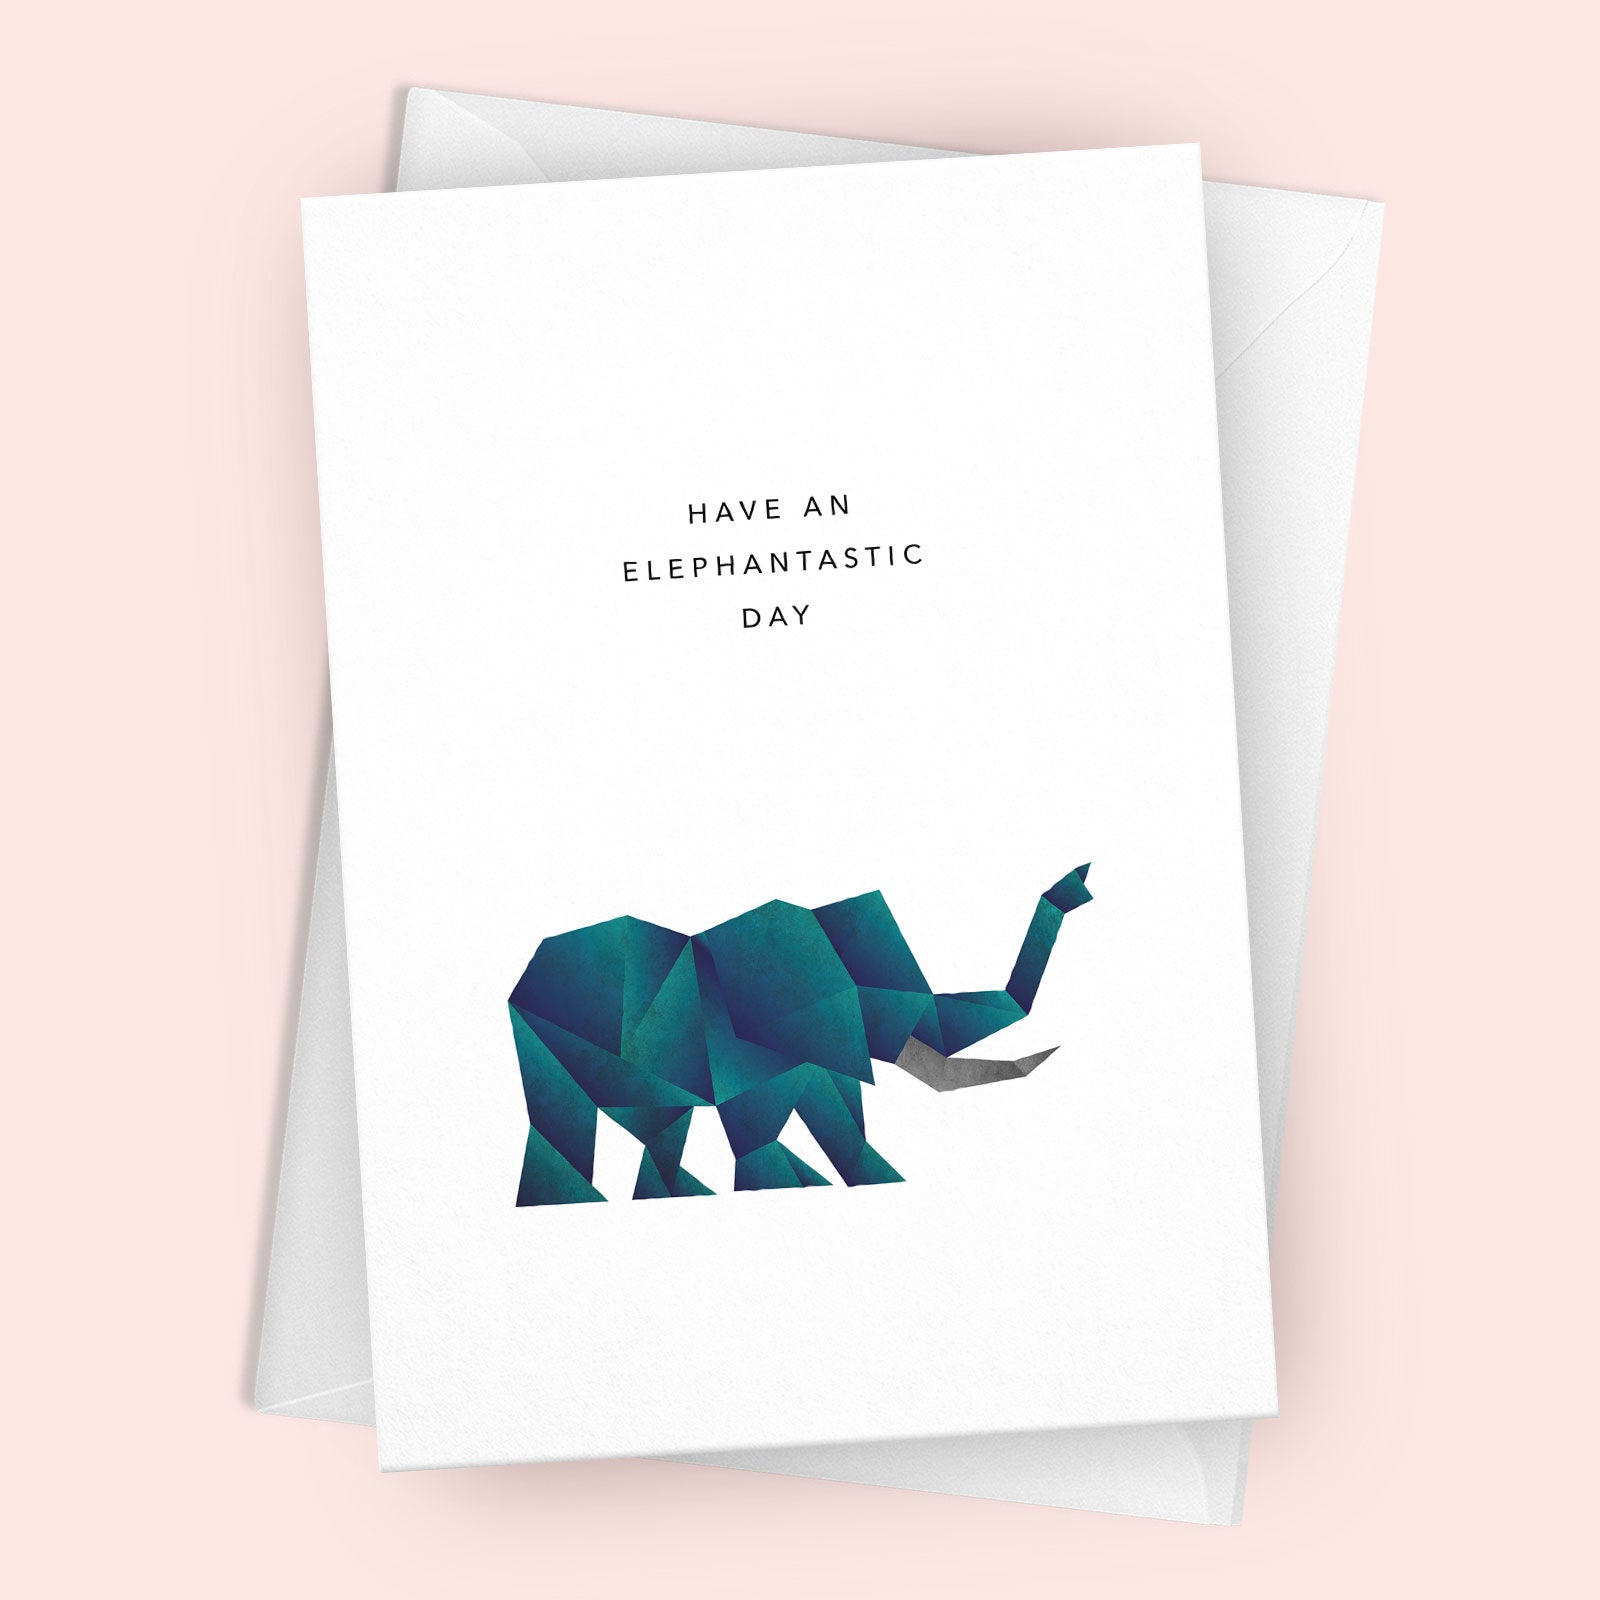 'Elephantastic Day' Greetings Card